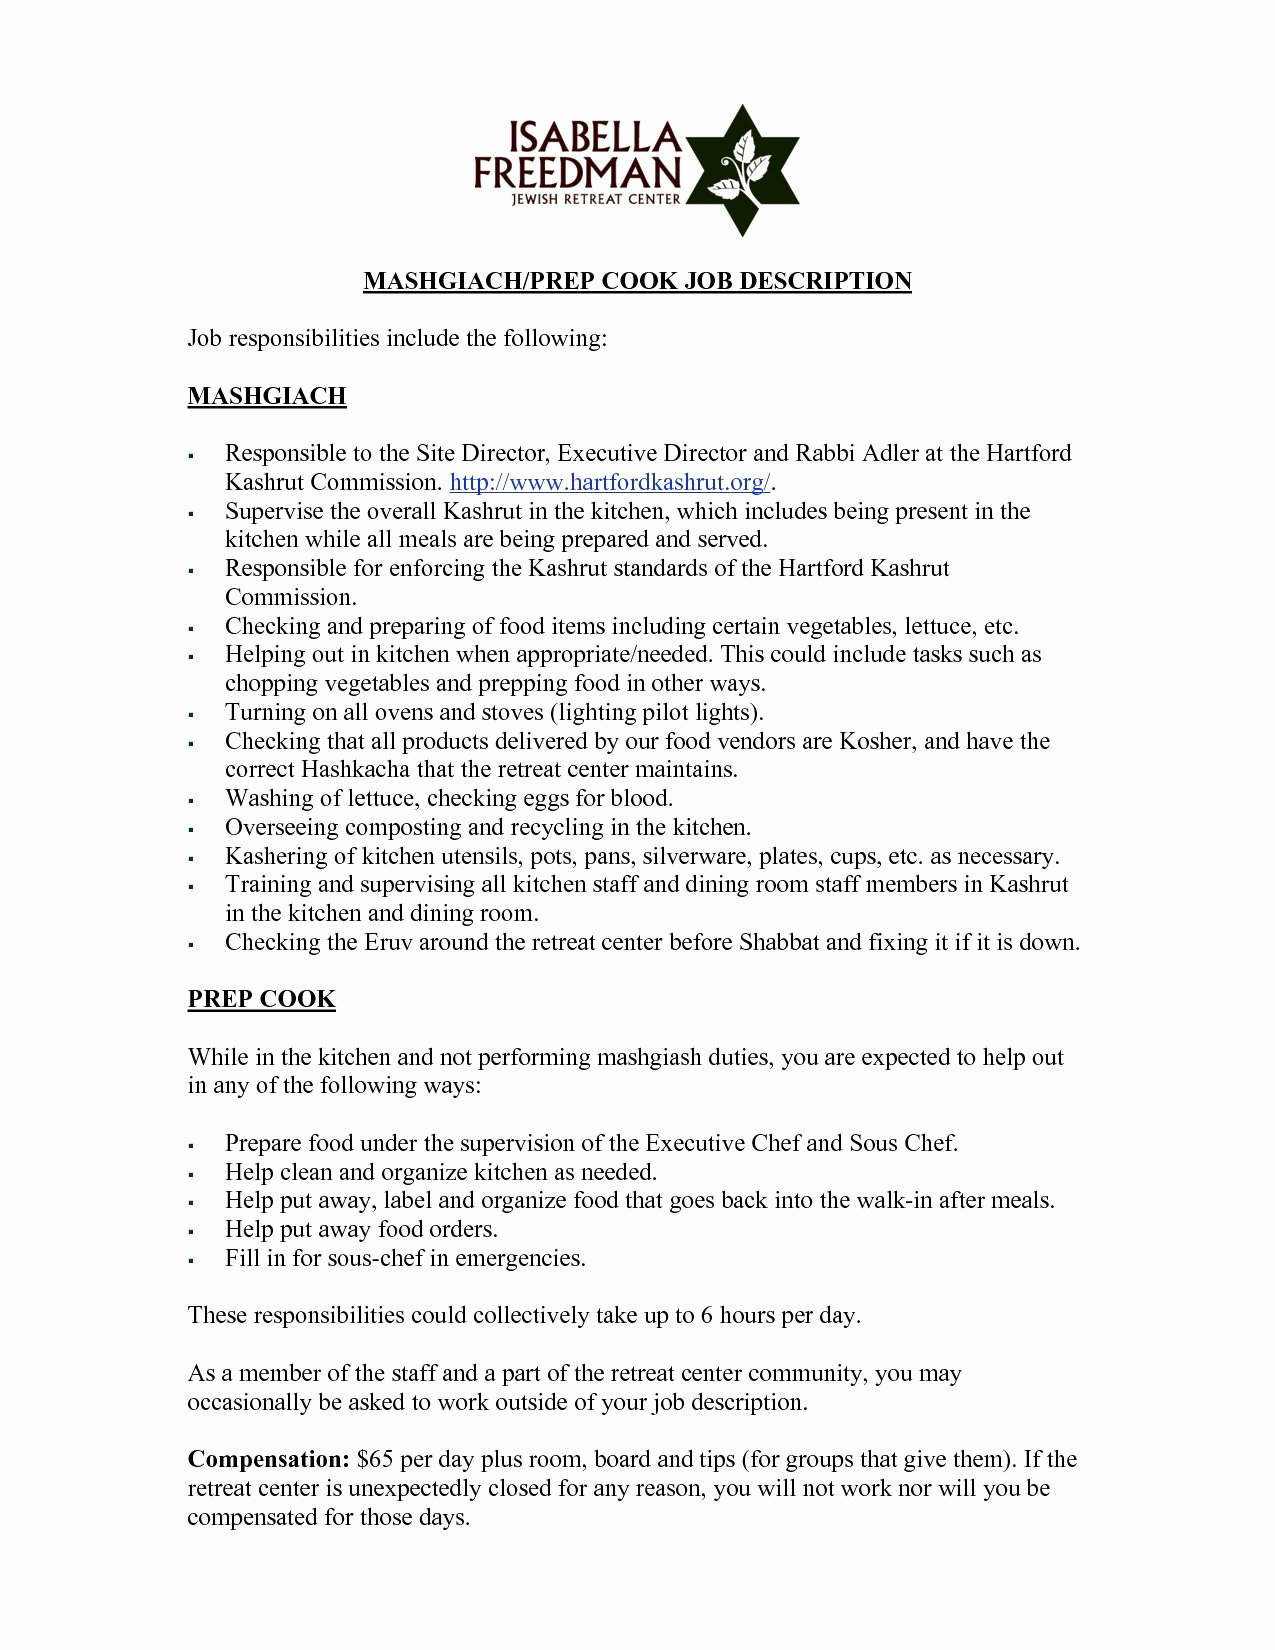 Loan Satisfaction Letter Template - Example Resume Cover Letter Lovely Od Specialist Sample Resume Wind